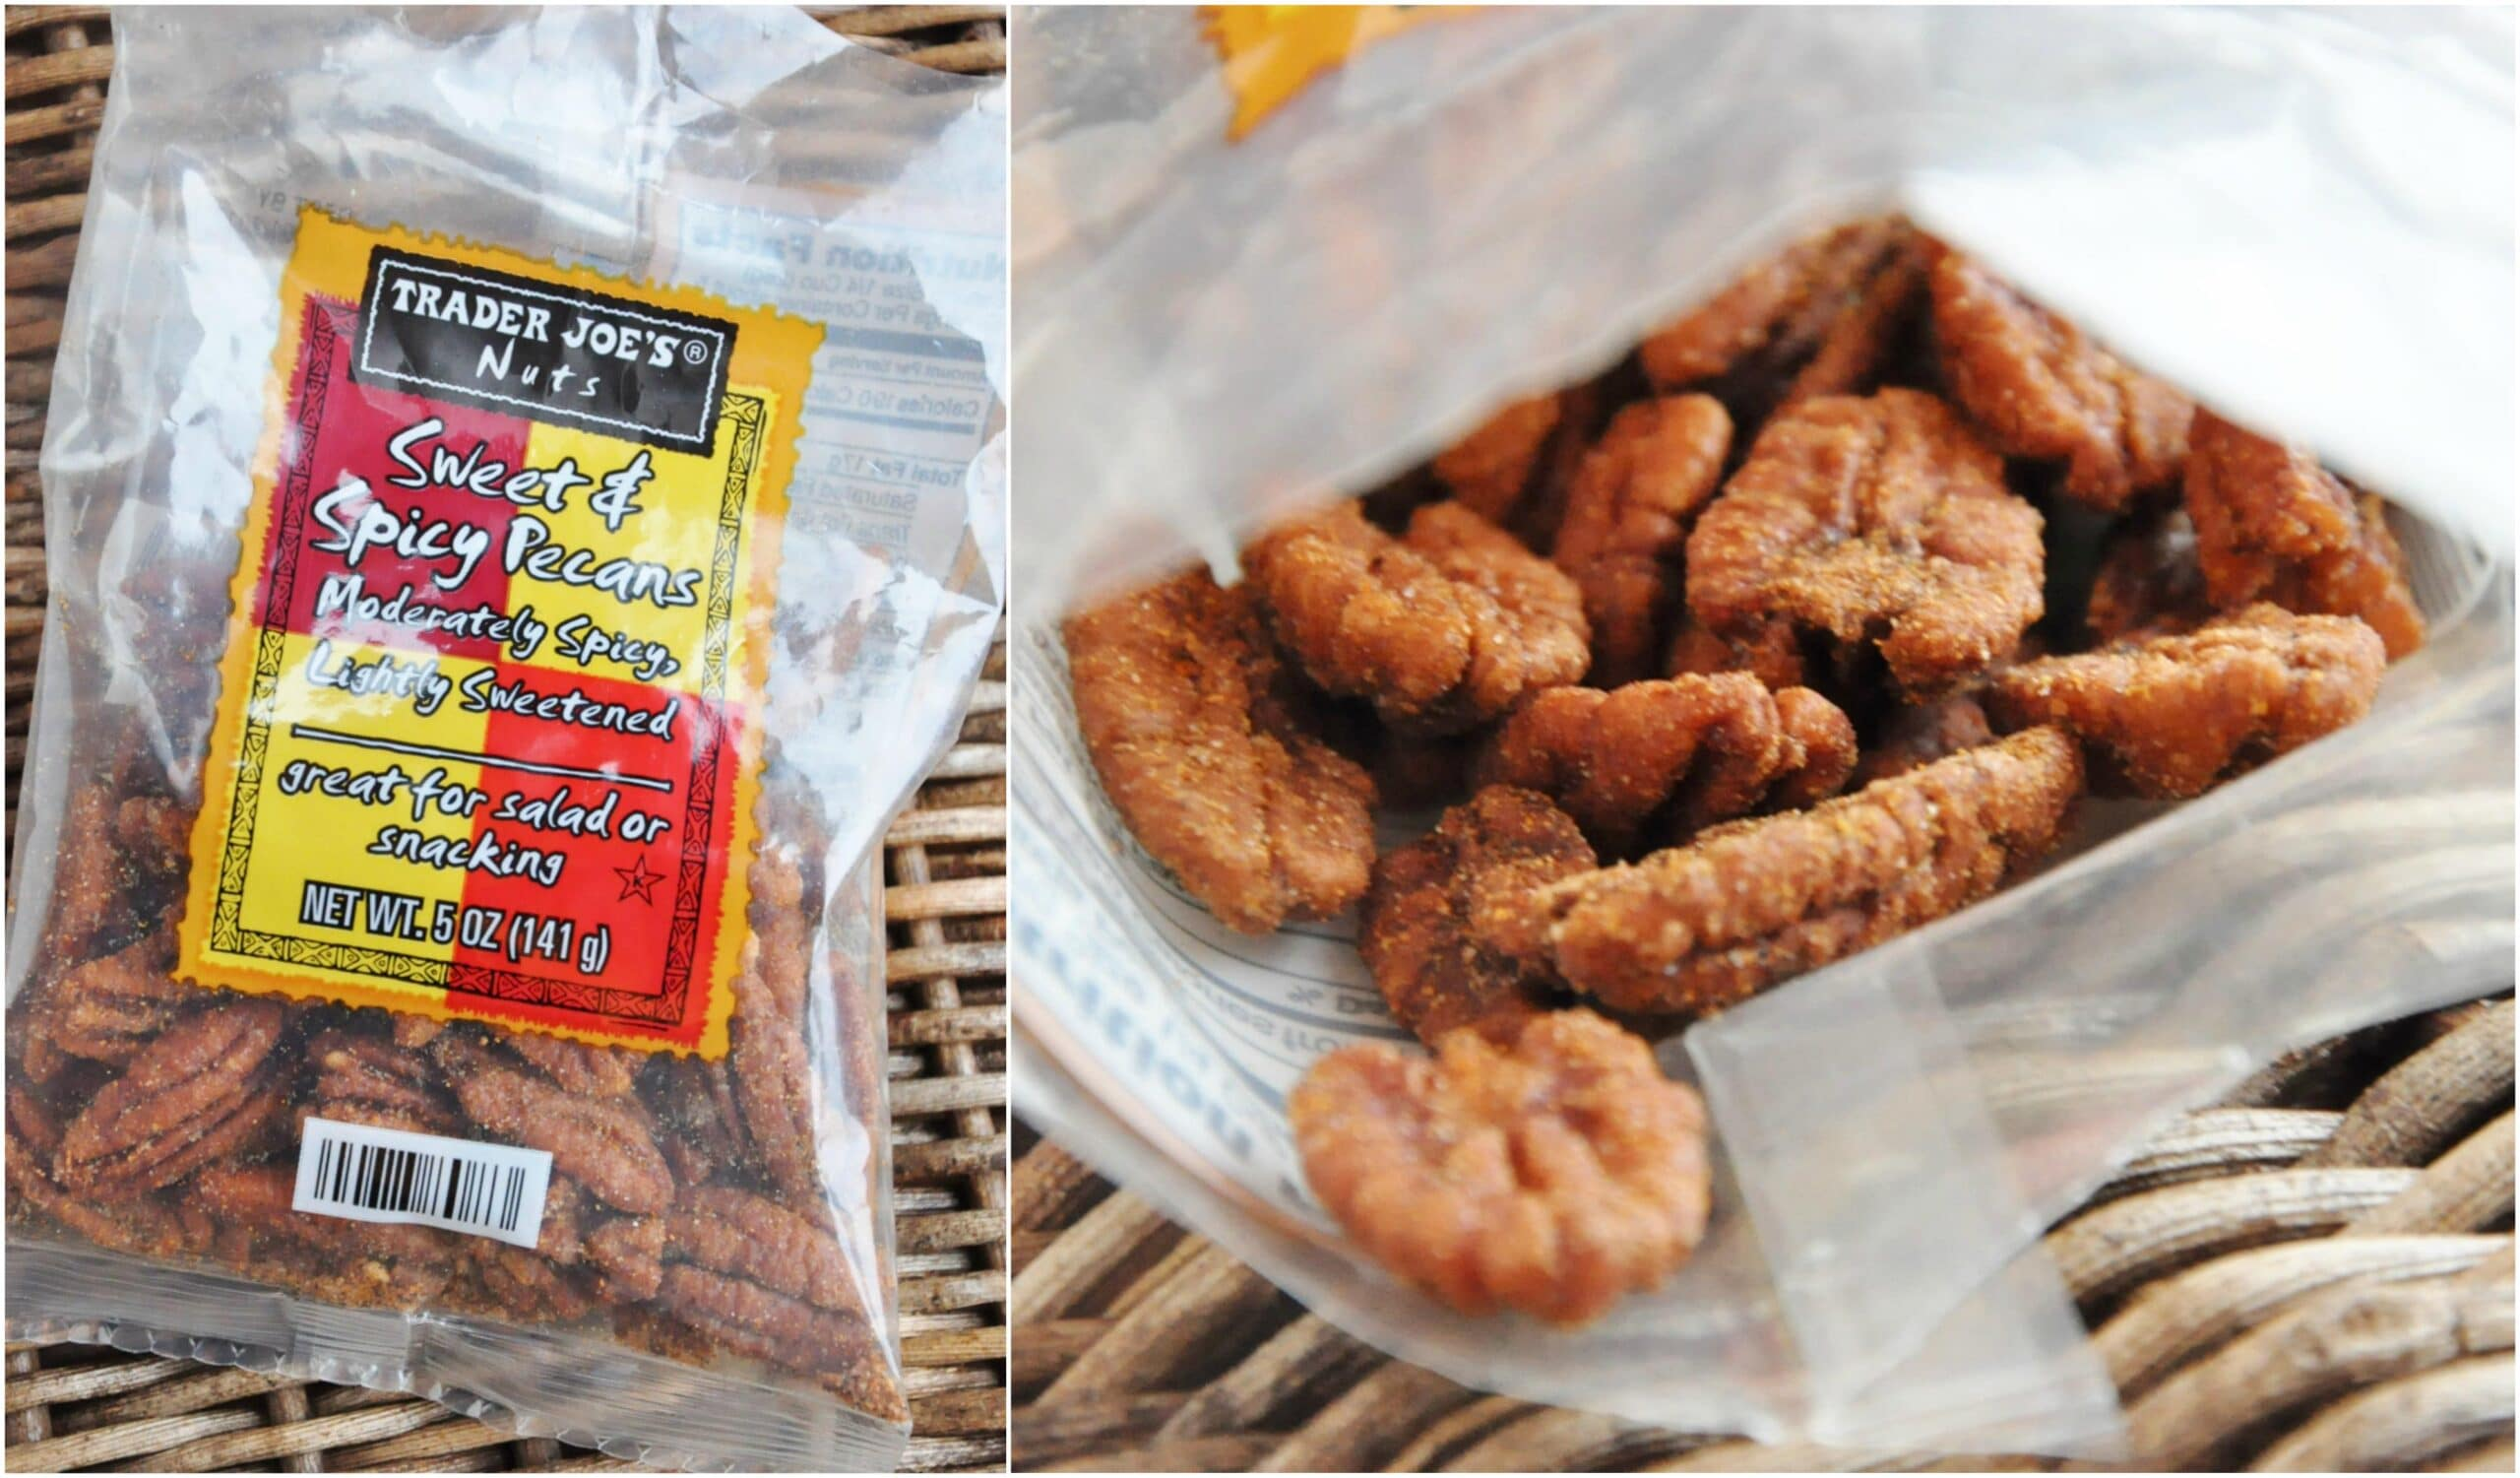 Trader Joe's Sweet & Spicy Pecans